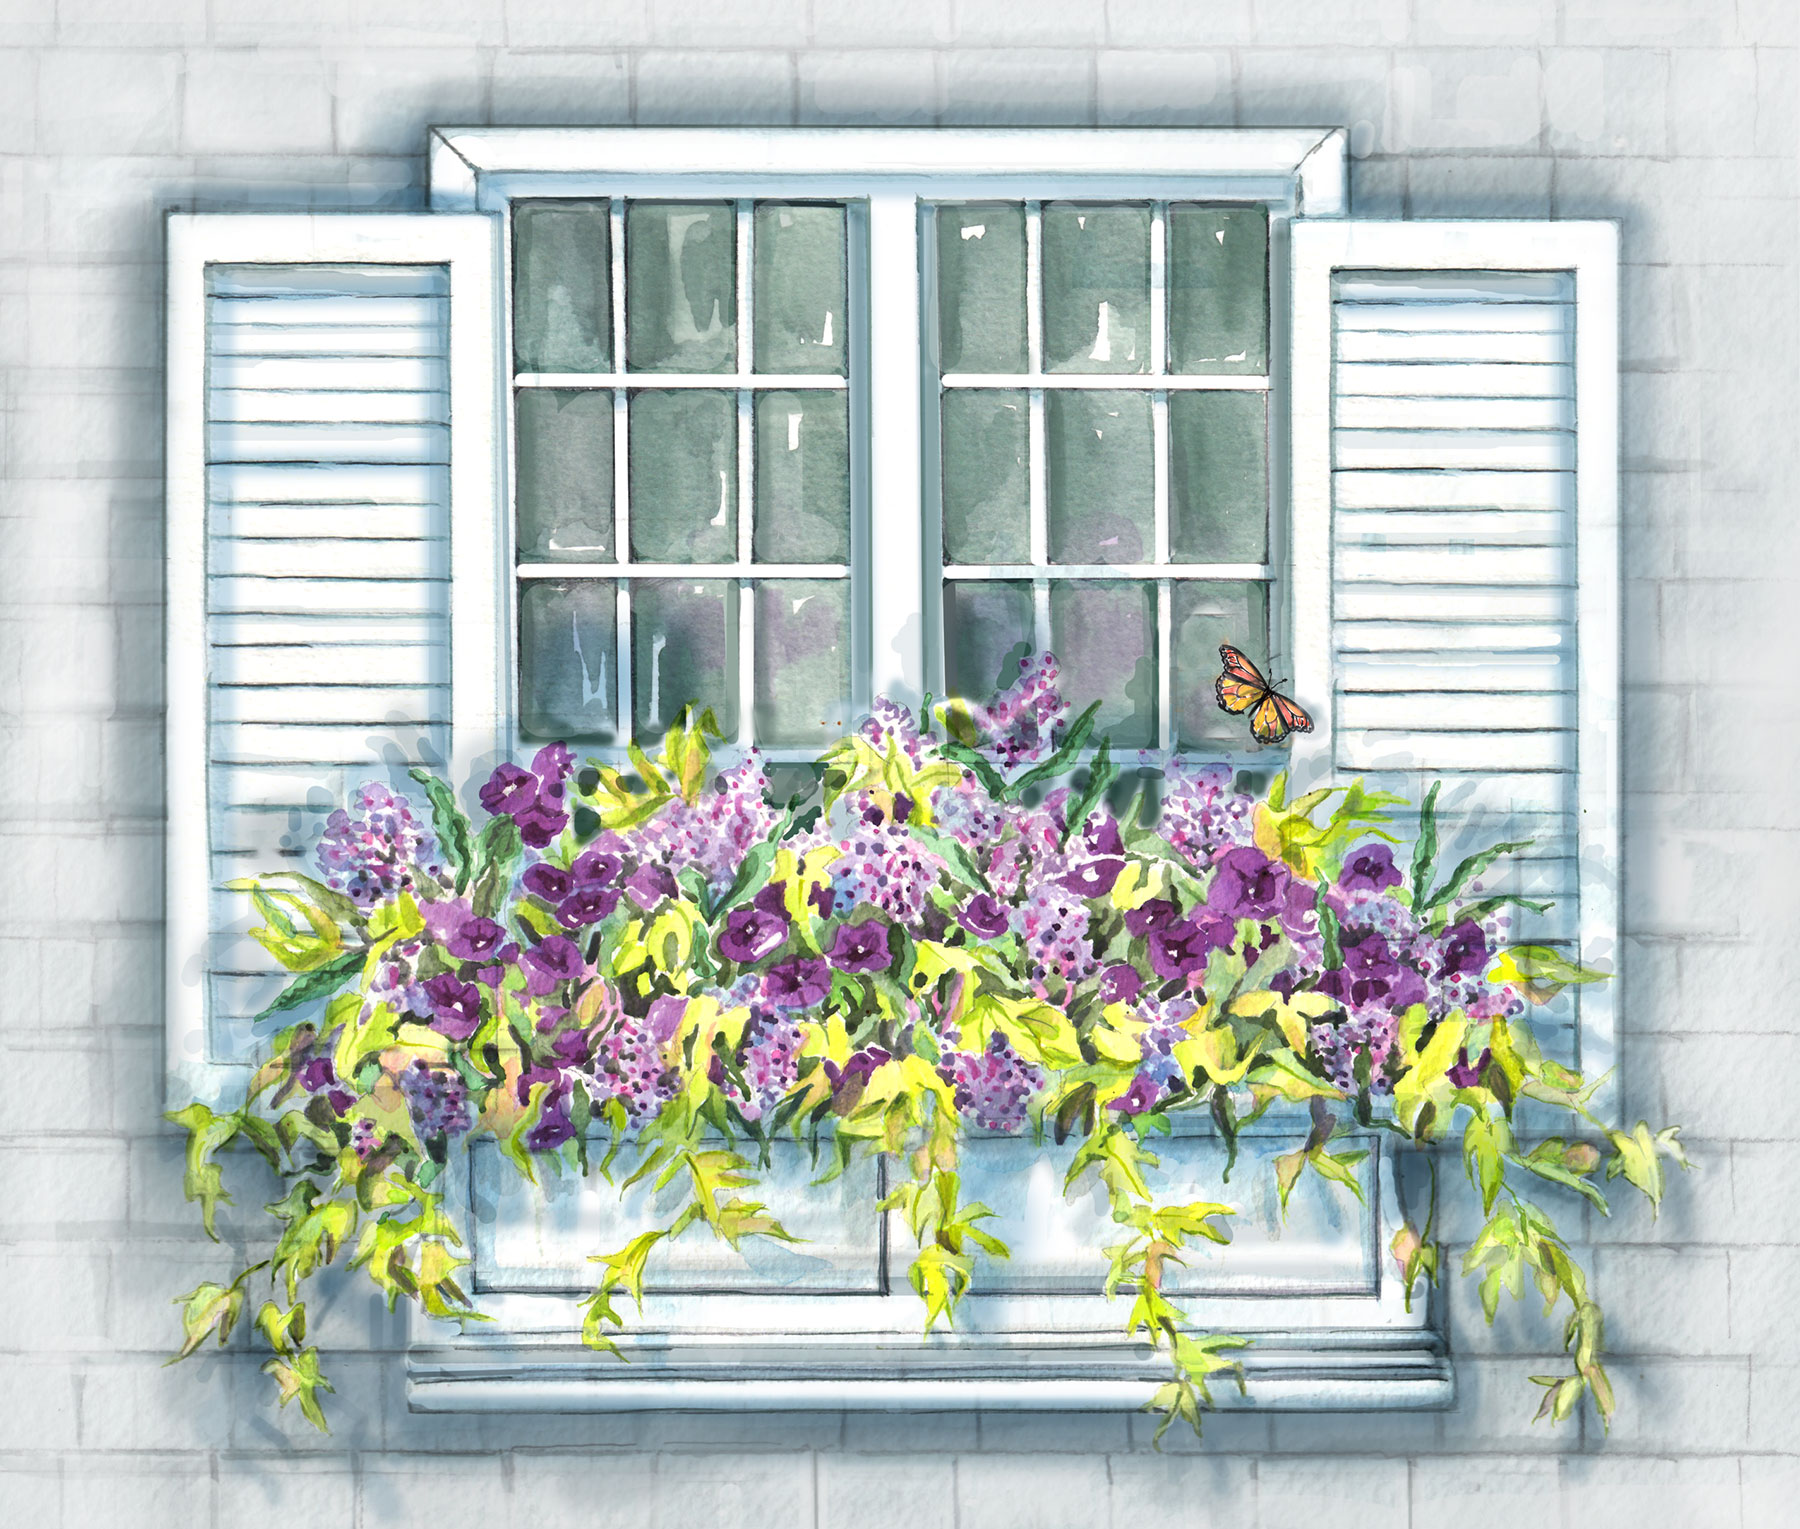 container-gardening-window-box-0519hom